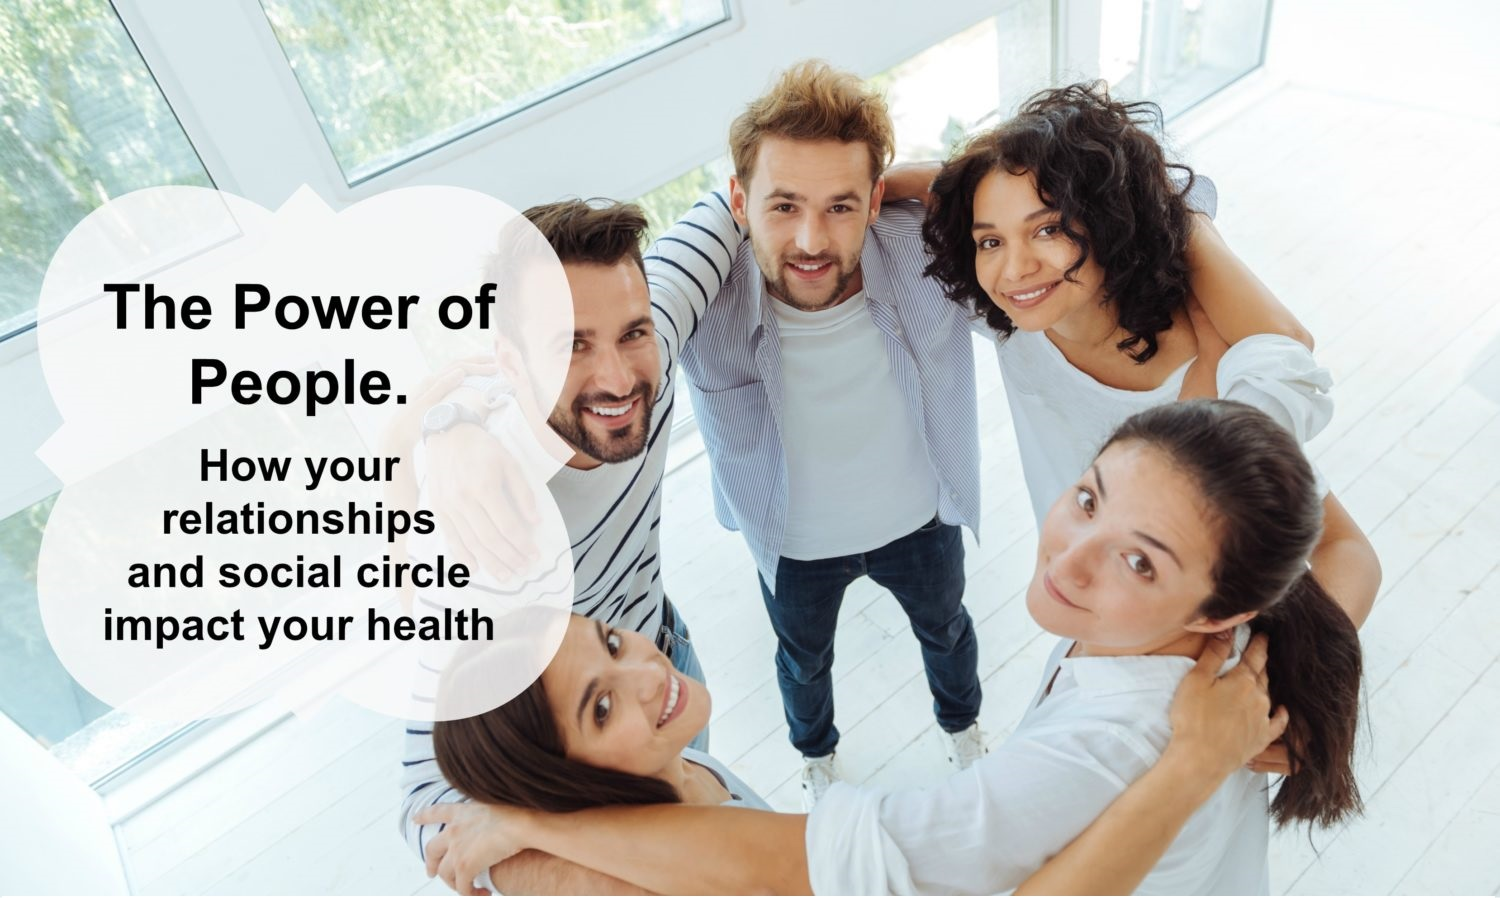 Take care of your social relationships